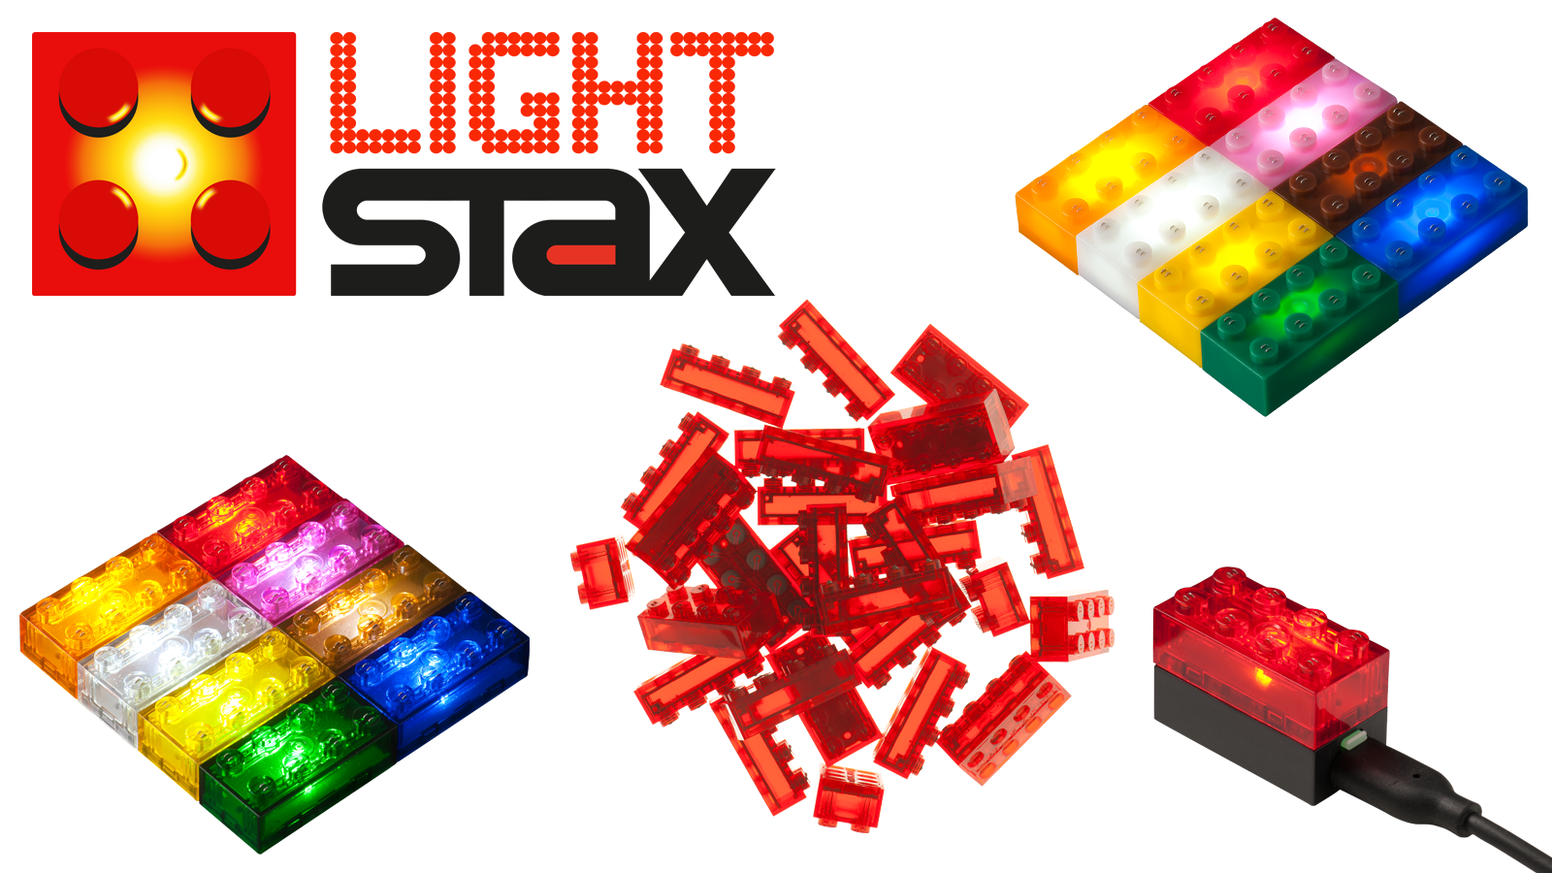 Light stax toy bricks meet led by arno fluitman kickstarter light stax are led bricks fully compatible with lego and other brands light asfbconference2016